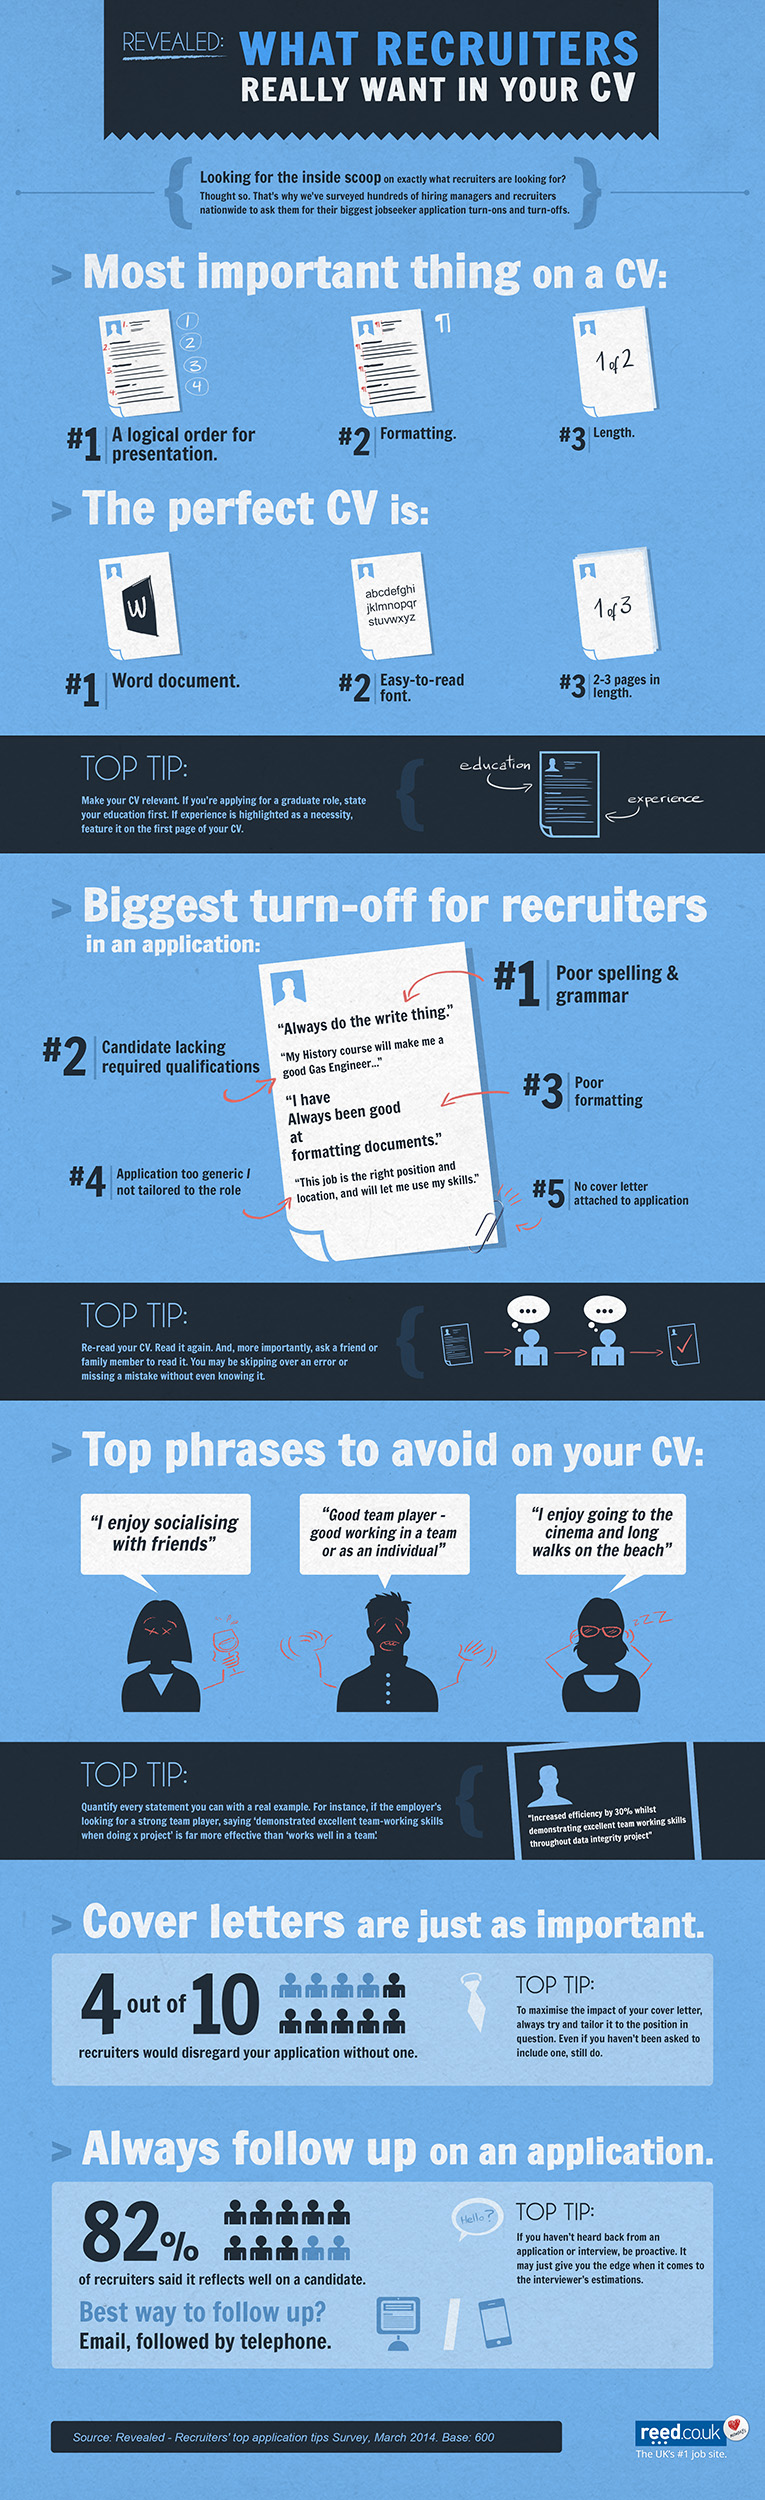 recruiters-really-want-in-your-cv-infographic